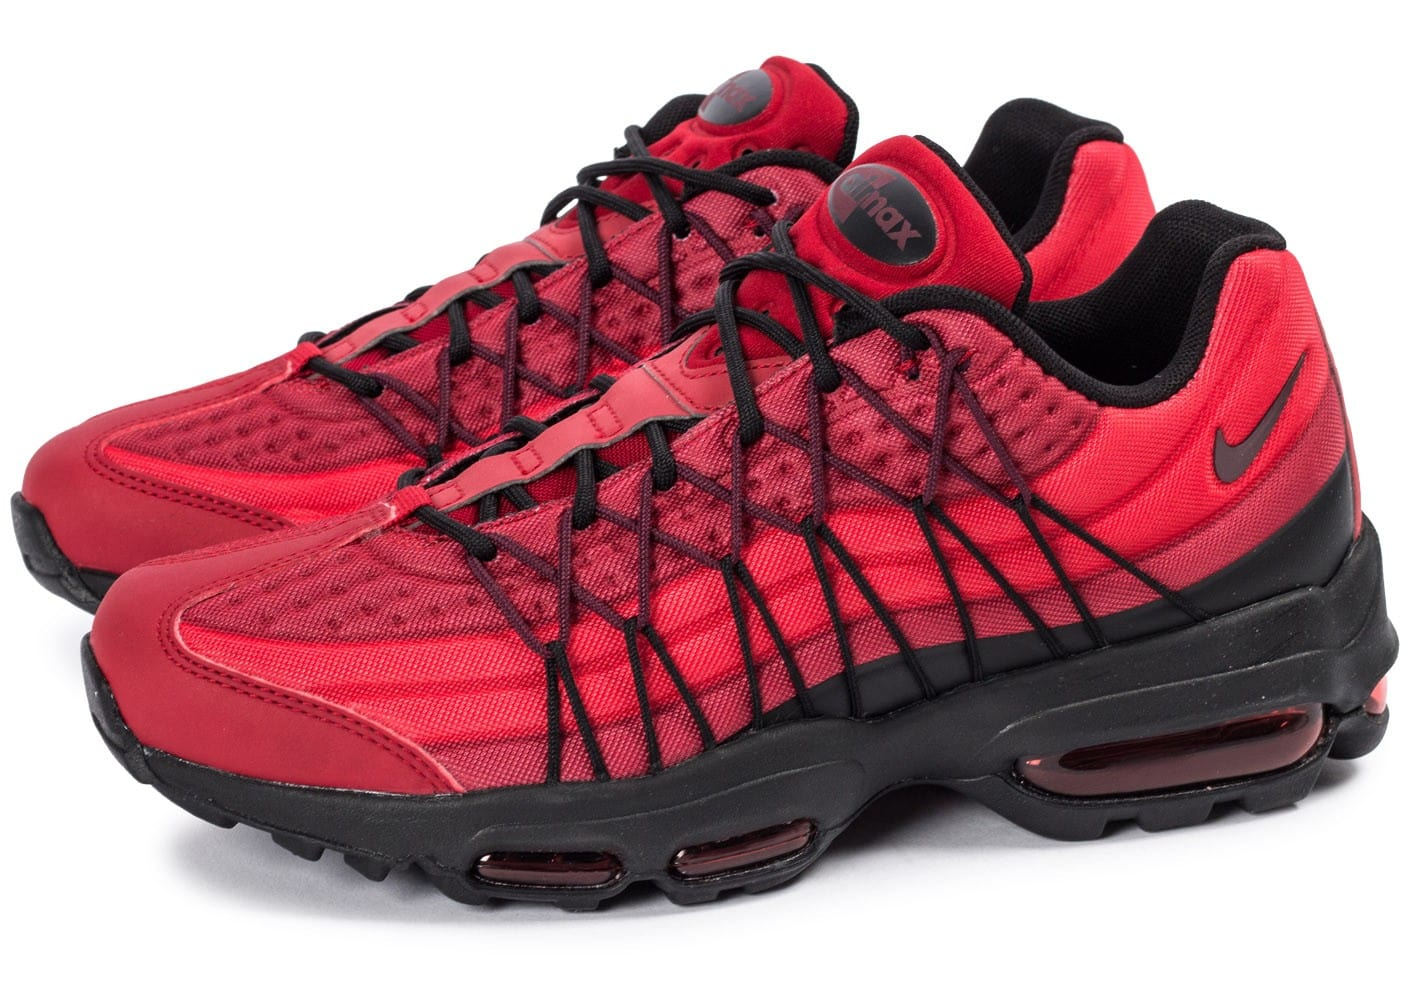 air max 95 ultra rouge allow project.eu